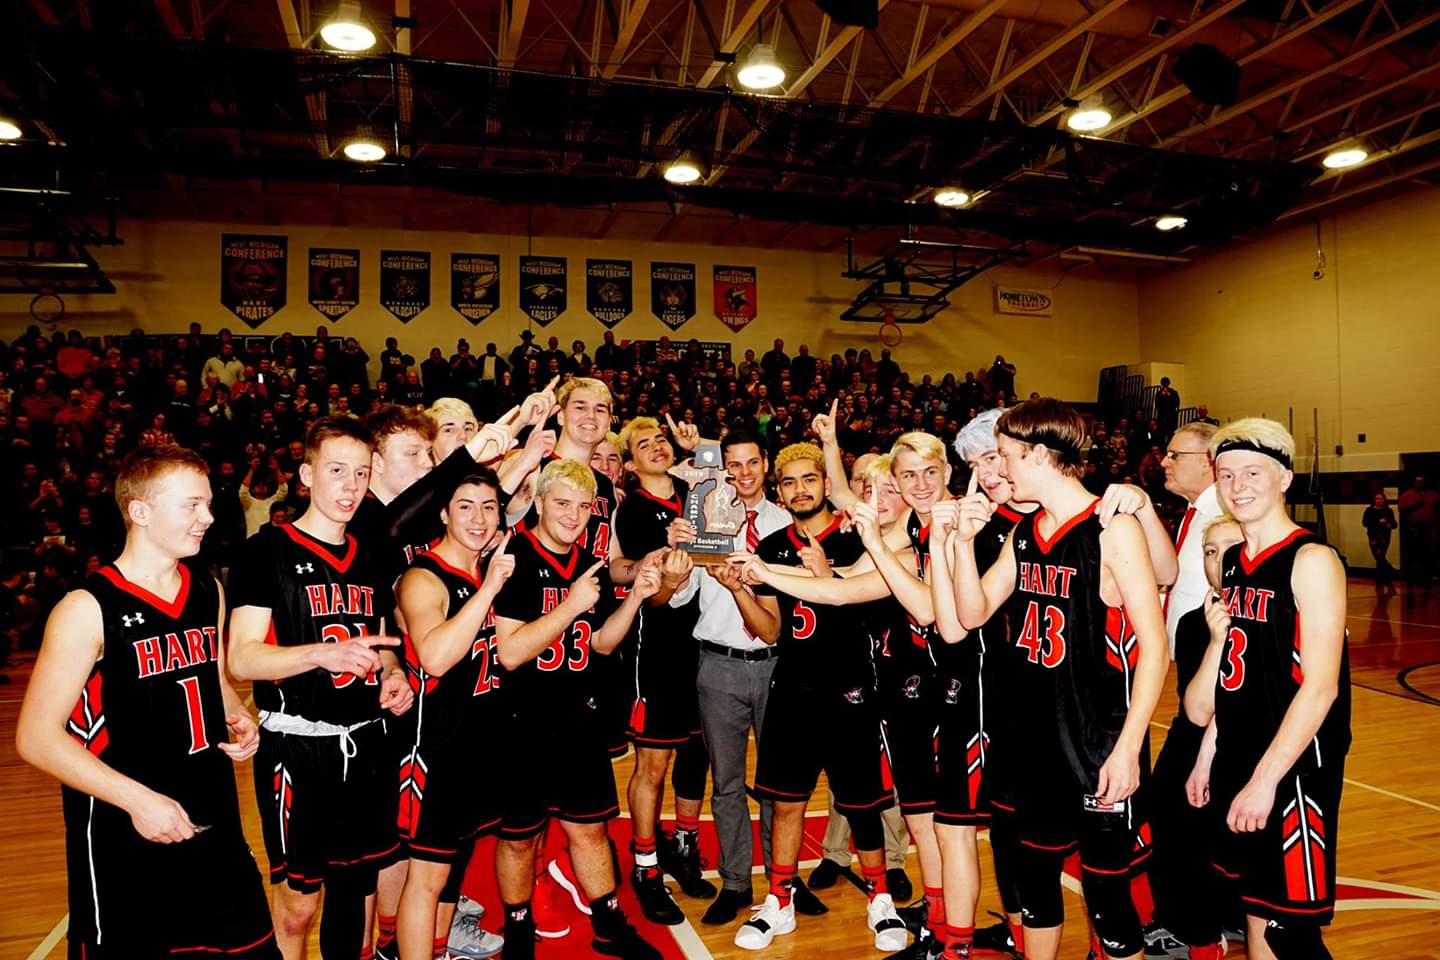 Hart boys basketball team cruises past Hesperia, wins Division 3 district title